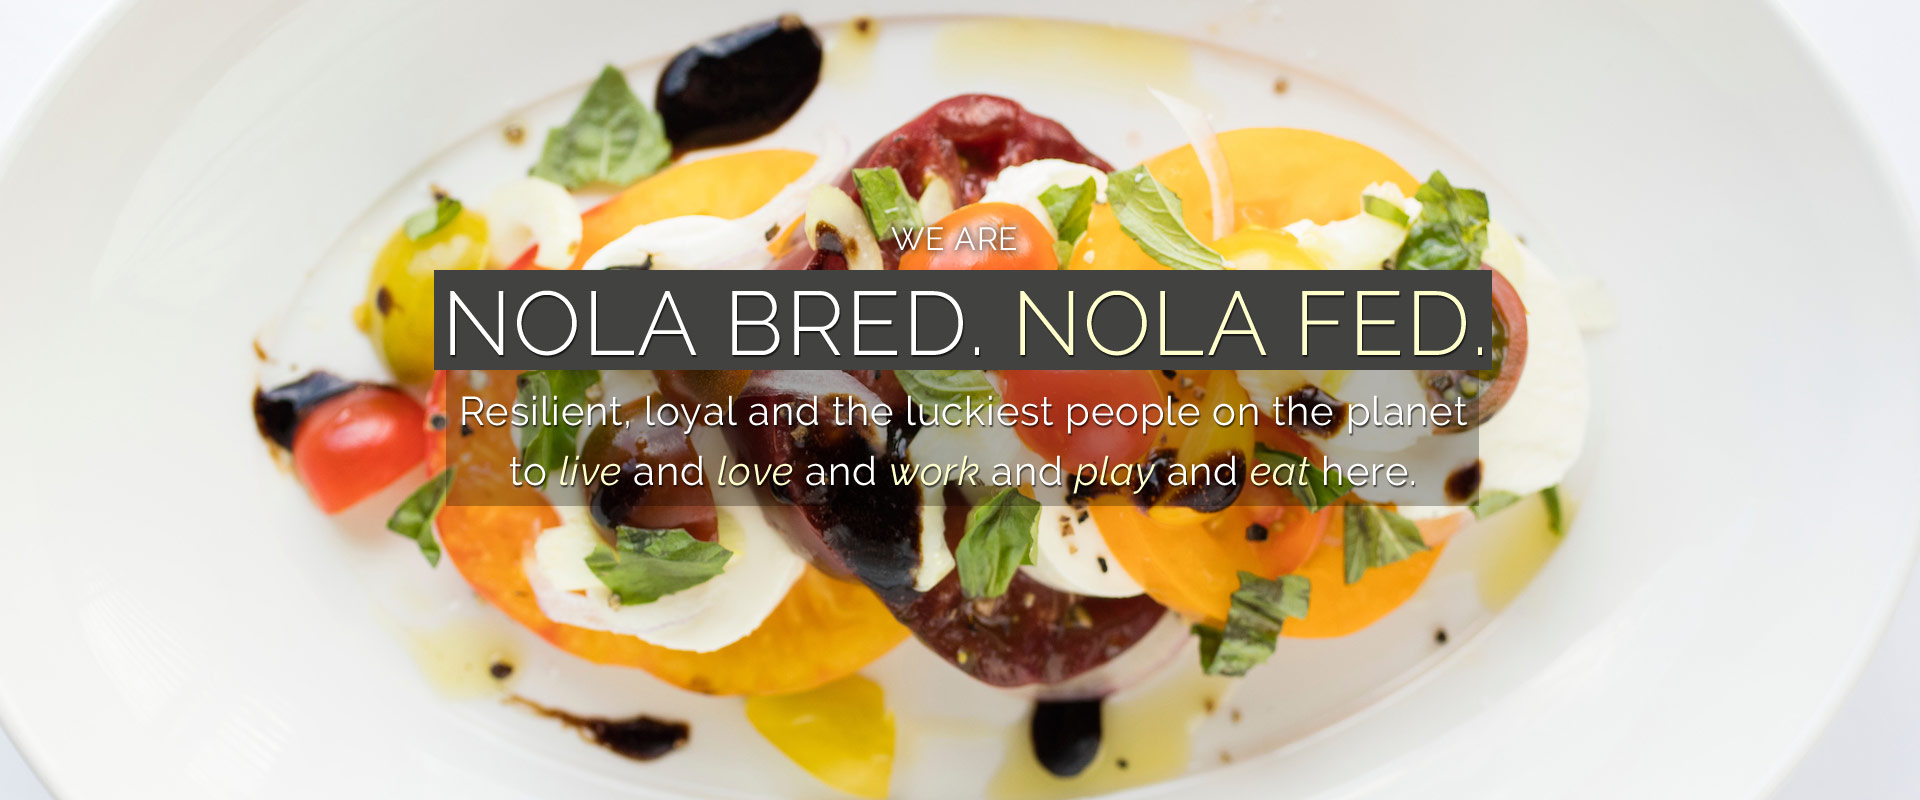 We are Nola Bred. Nola Fed.  Resilient, loyal, and the luckiest people on the planet to live and love and work and play and eat here.